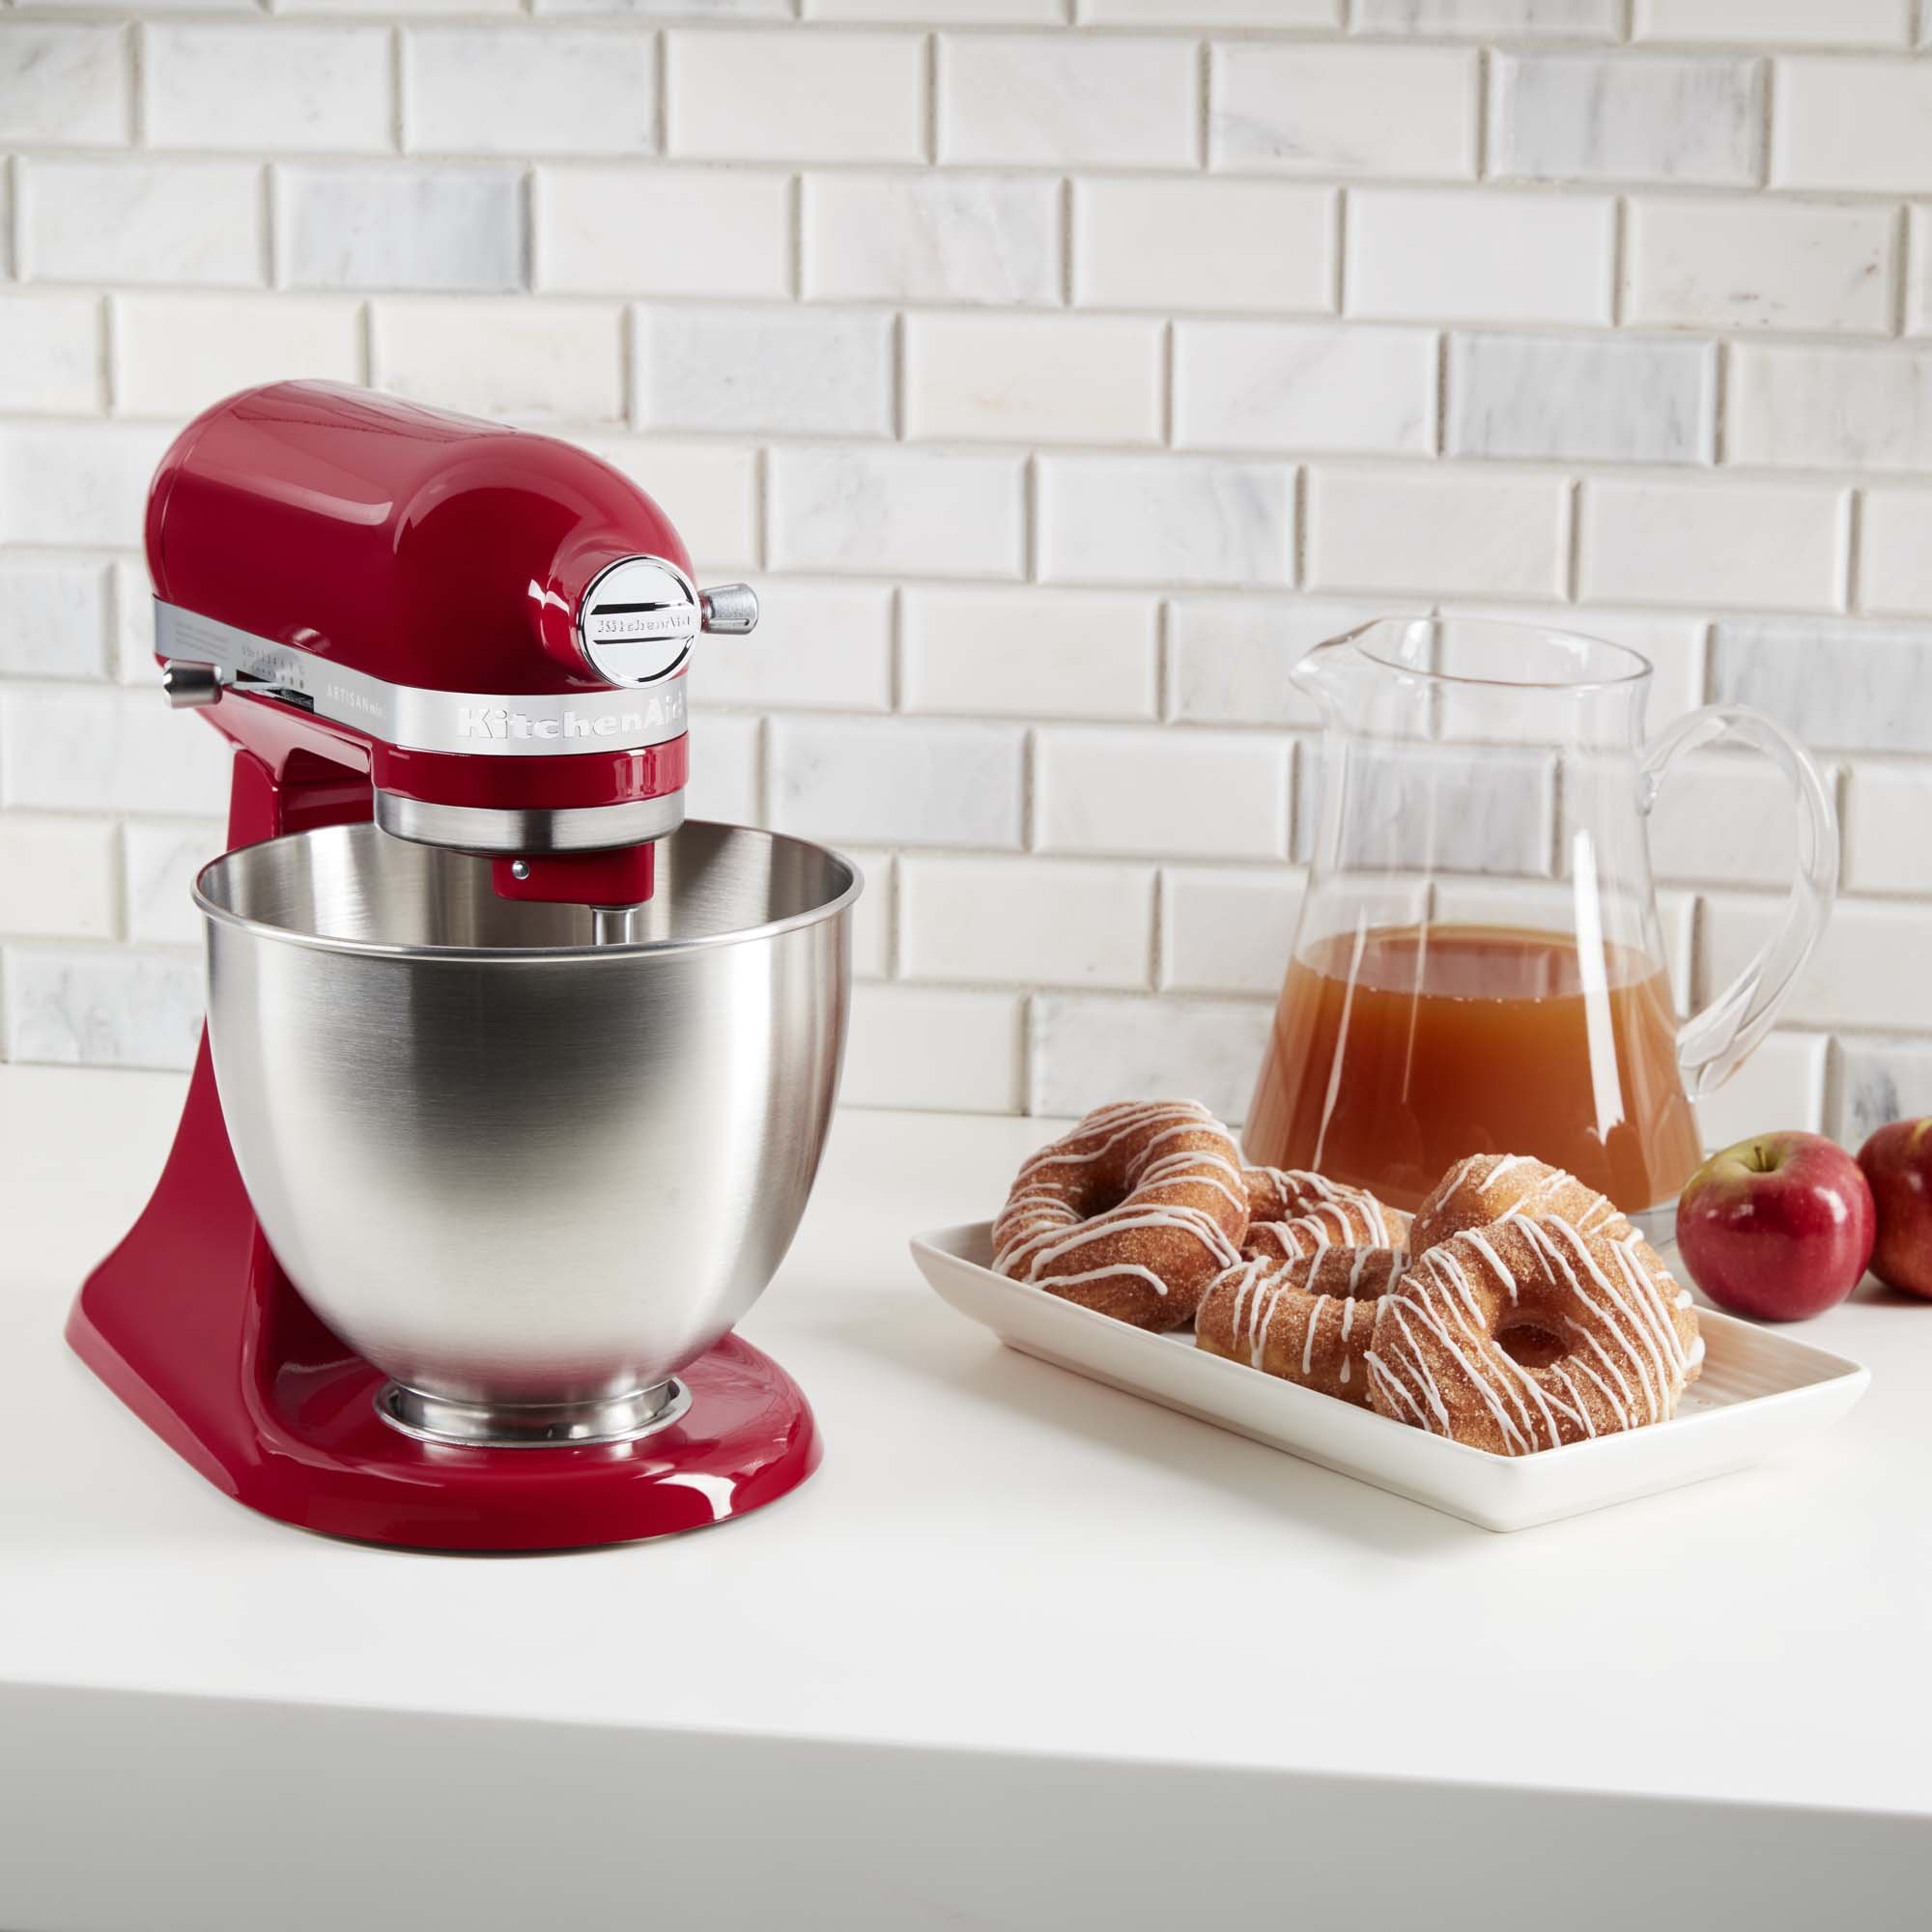 KitchenAid-Refurbished-Artisan-Mini-3-5-Quart-Tilt-Head-Stand-Mixer-RKSM33XX thumbnail 15